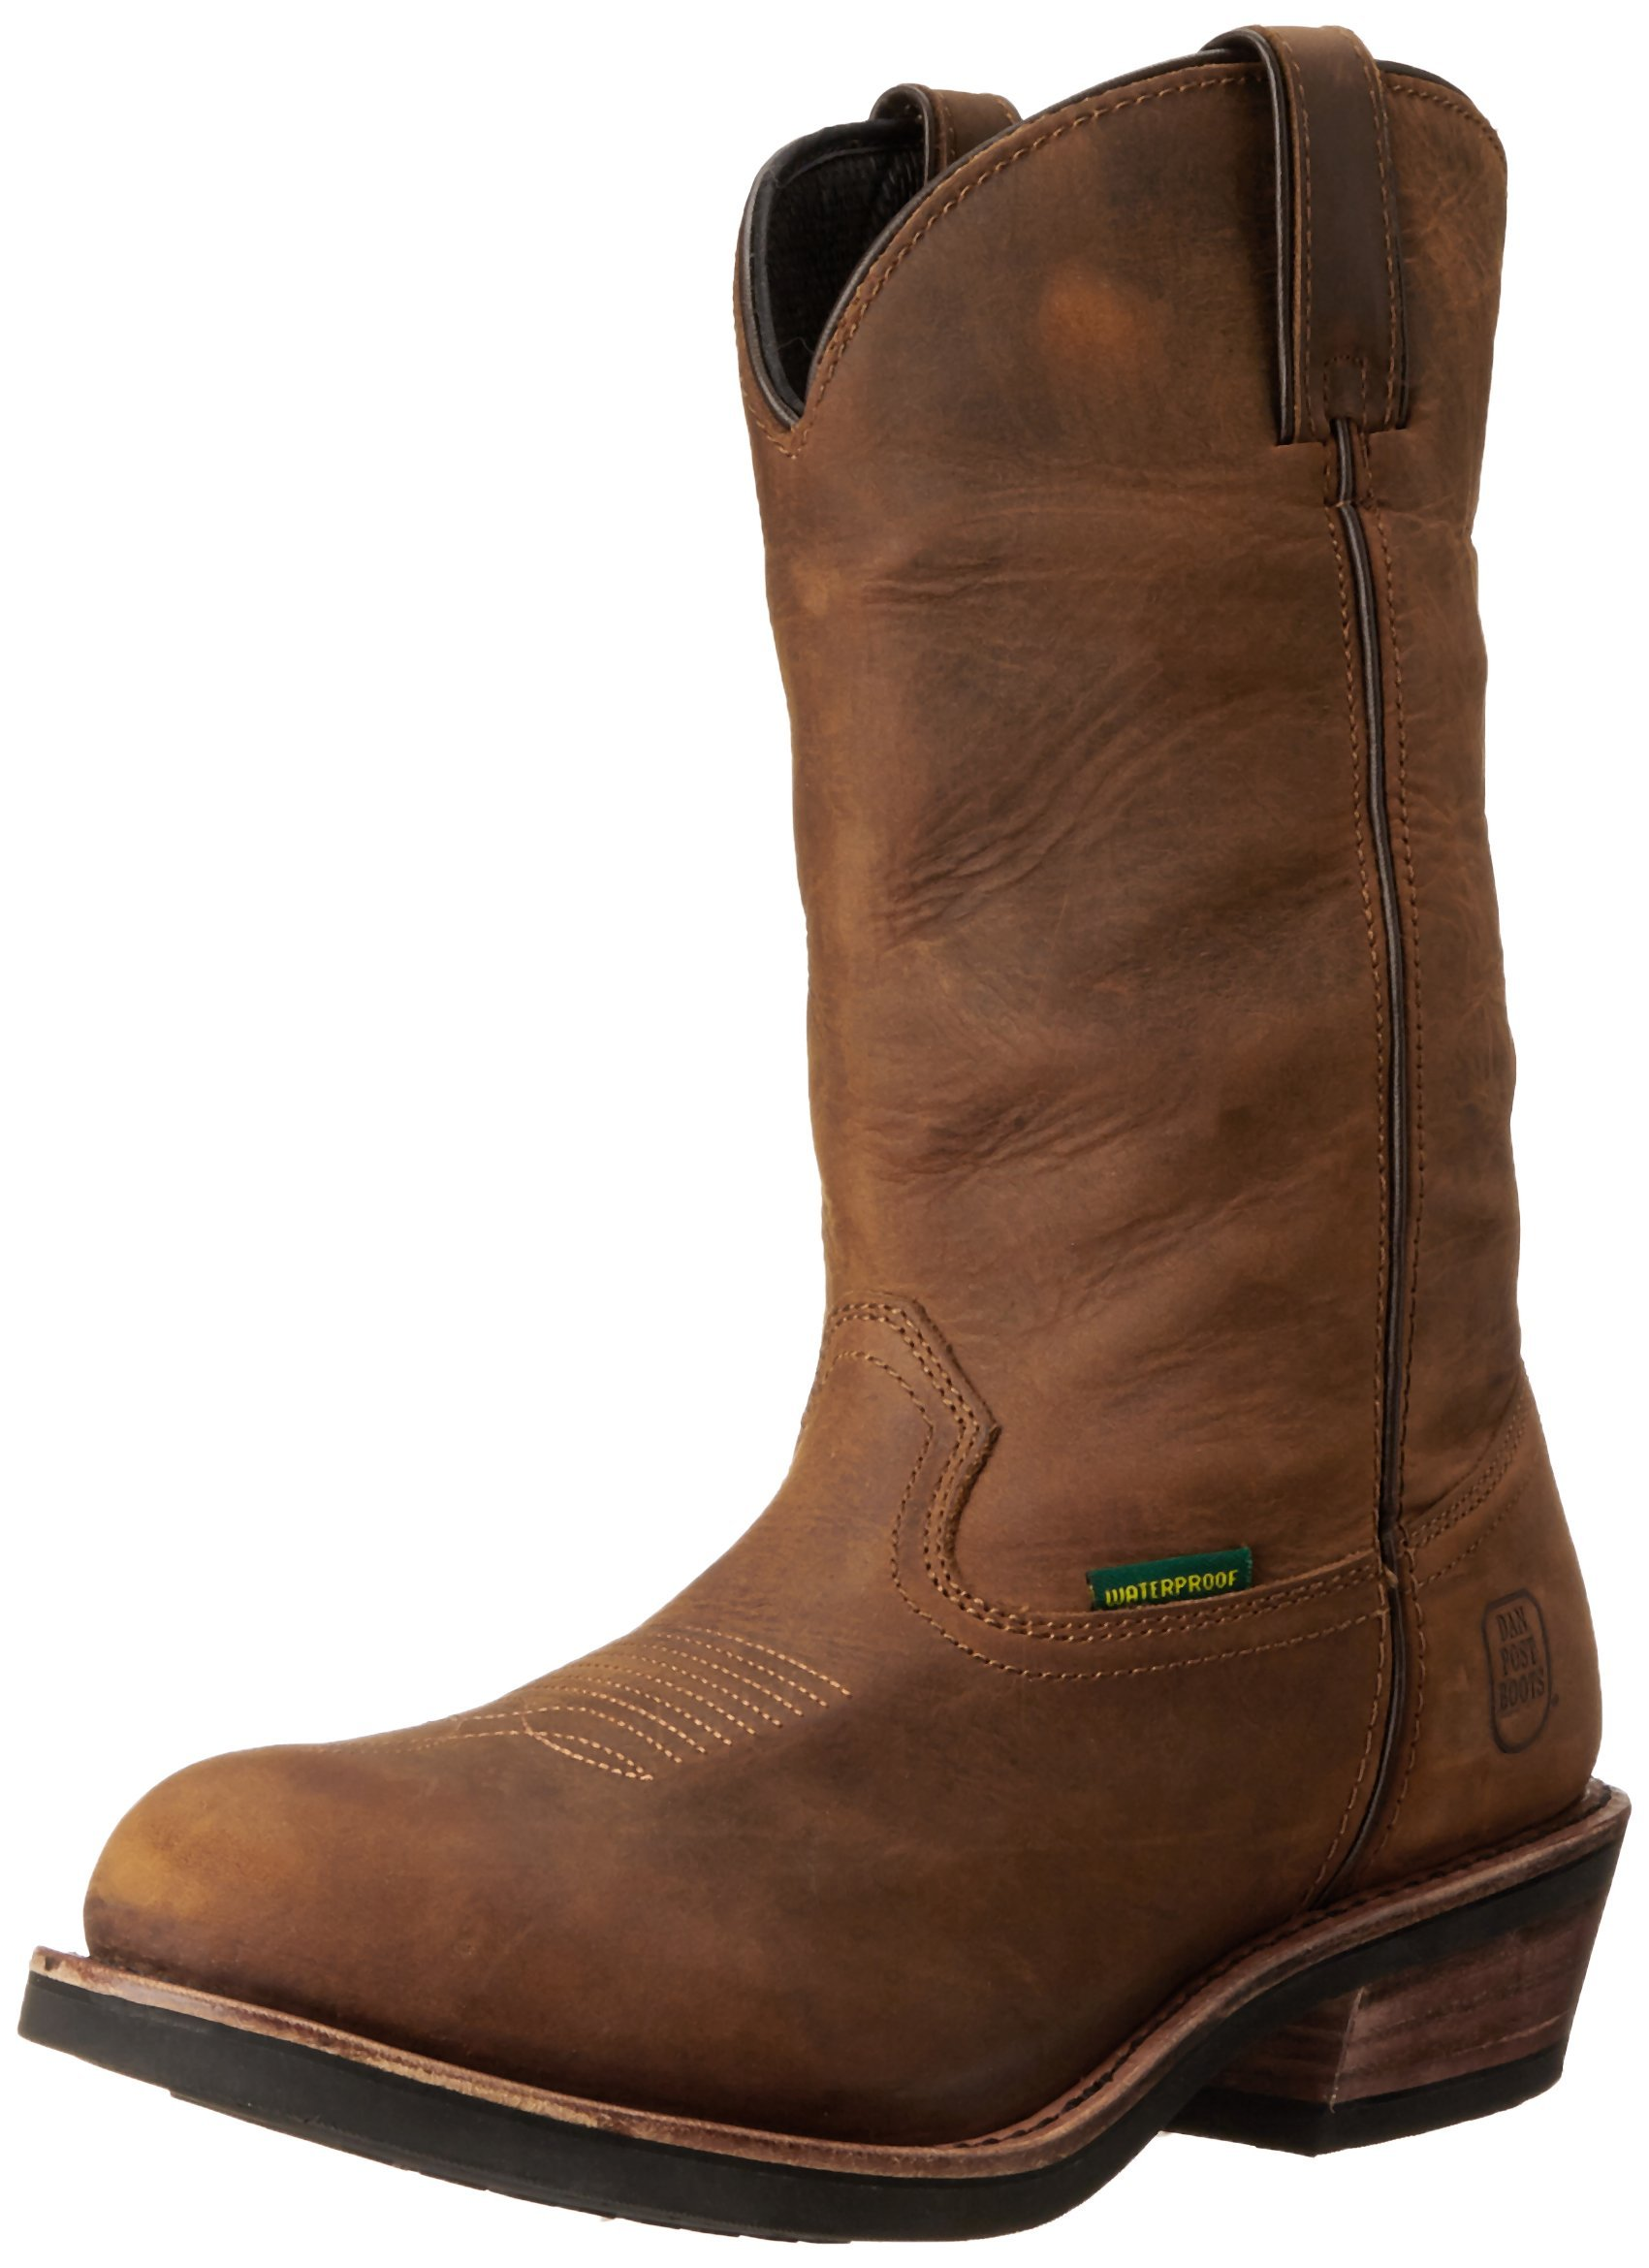 Dan Post Men's Albuquerque Waterproof Boot,Mid Brown Oily,11  EW US